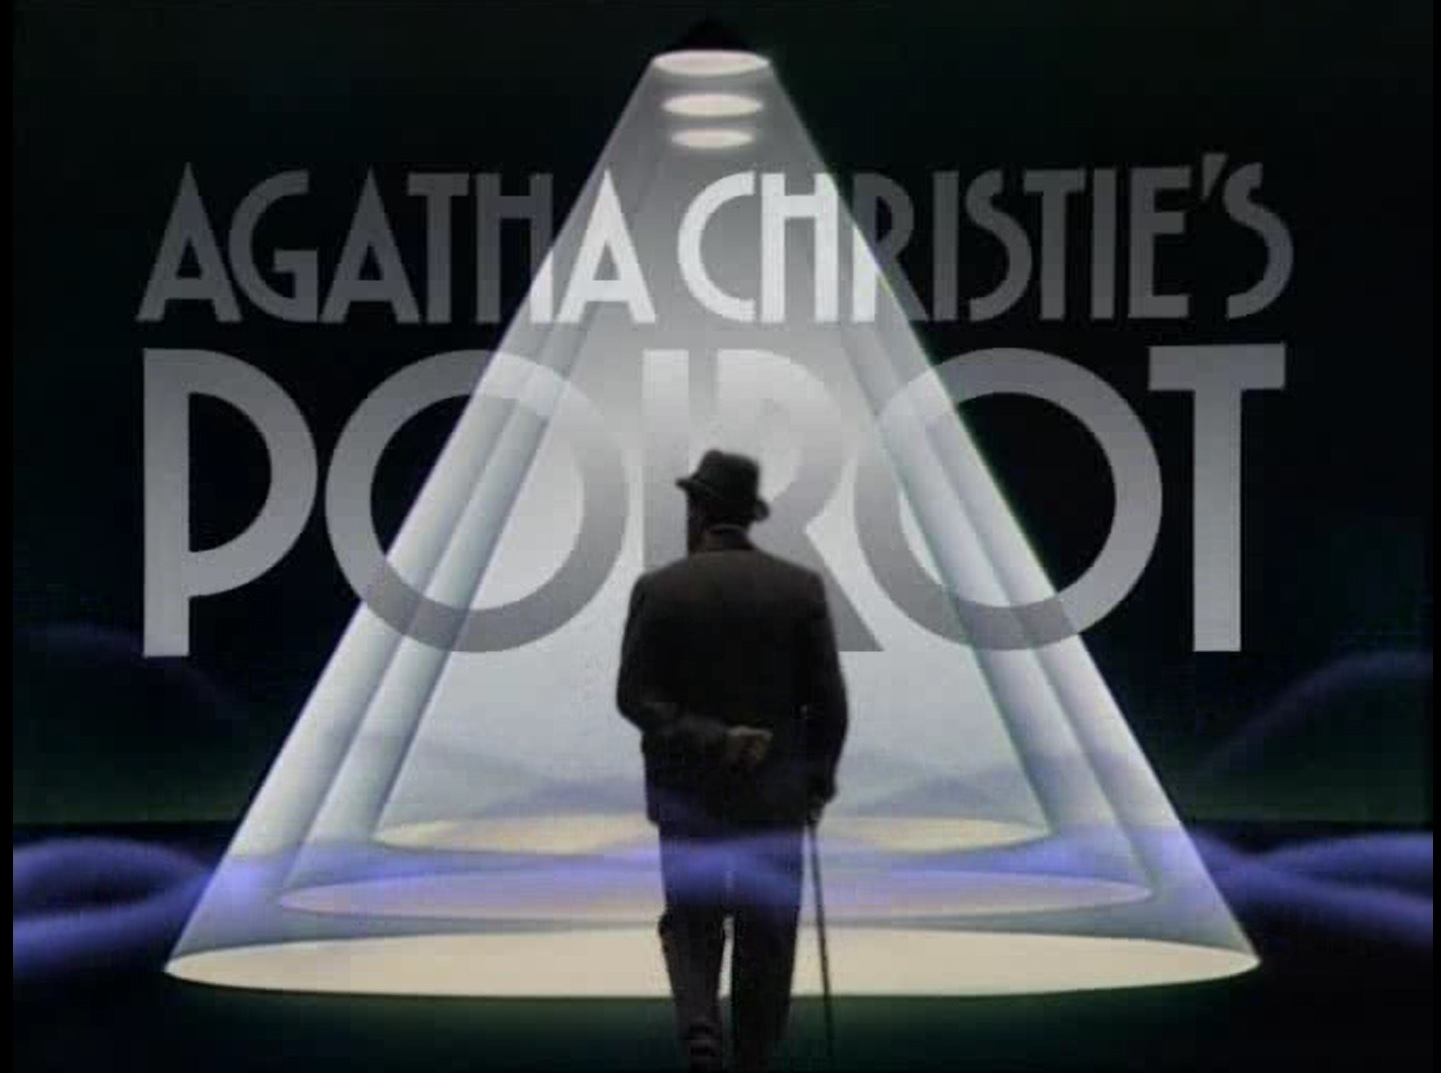 a review of agatha christies novel the mysterious affair at styles The mysterious affair at styles by agatha christie this is agatha christie's first published novel she wrote it in 1916 the famous detective hercule poirot is introduced for the first time in this book read online now get the pdf download free pdf category: free ebooks tags: agatha christie, classic reviews (0).